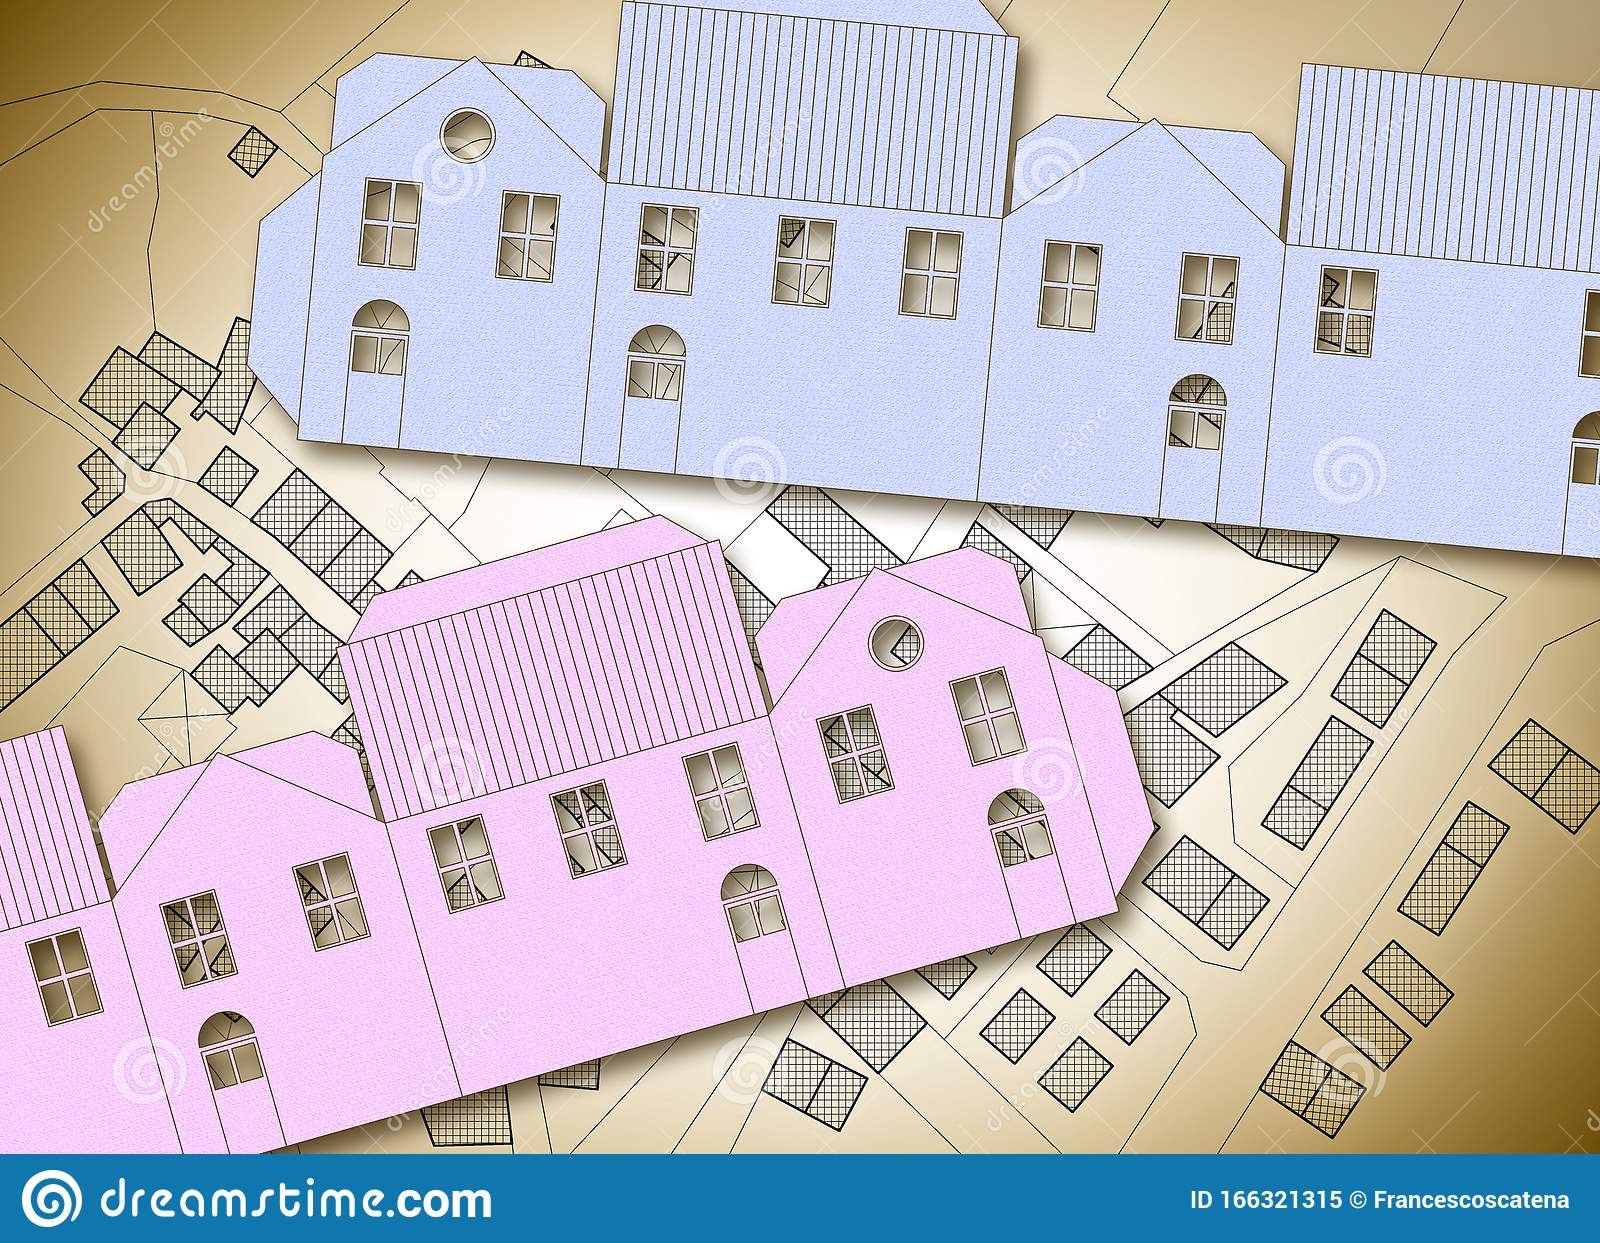 Build Your Own Home Concept Image With An Origami Paper House Against A City Map Stock Image Image Of Cartography Chart 166321315